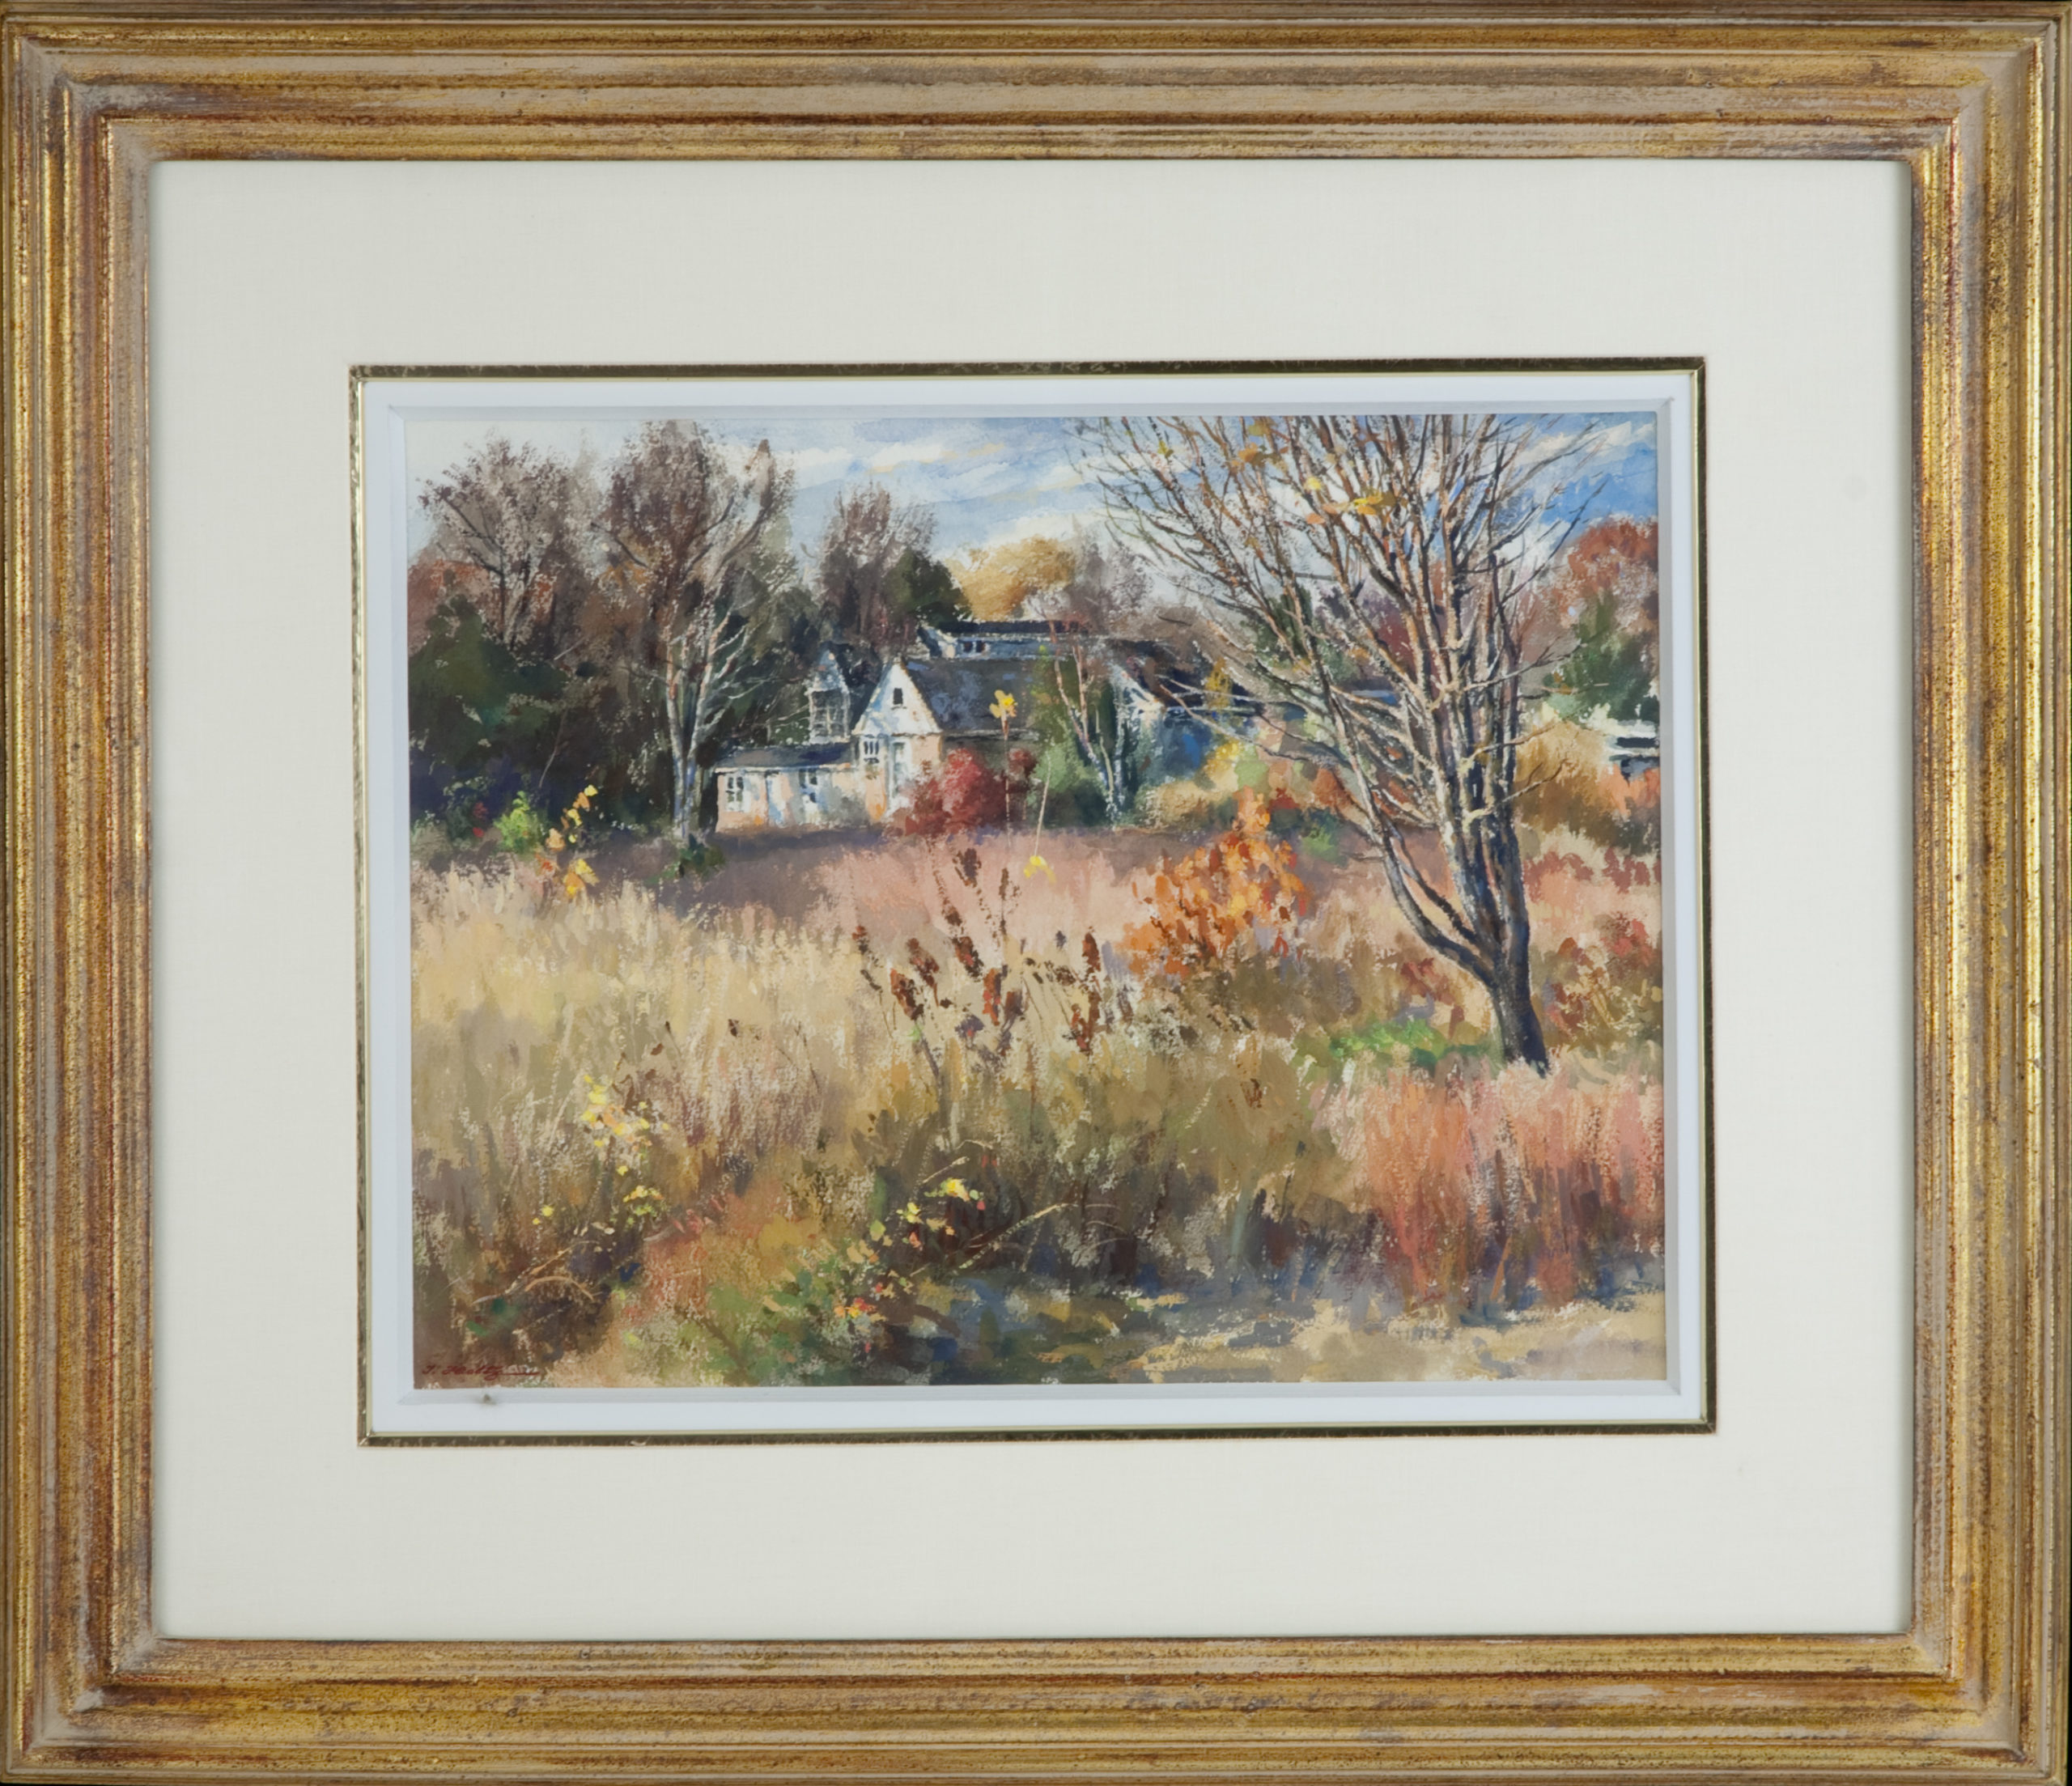 166 Autumn Afternoon 1975 - Watercolor - 16 x 12 - Frame: 26 x 22.25 x 2